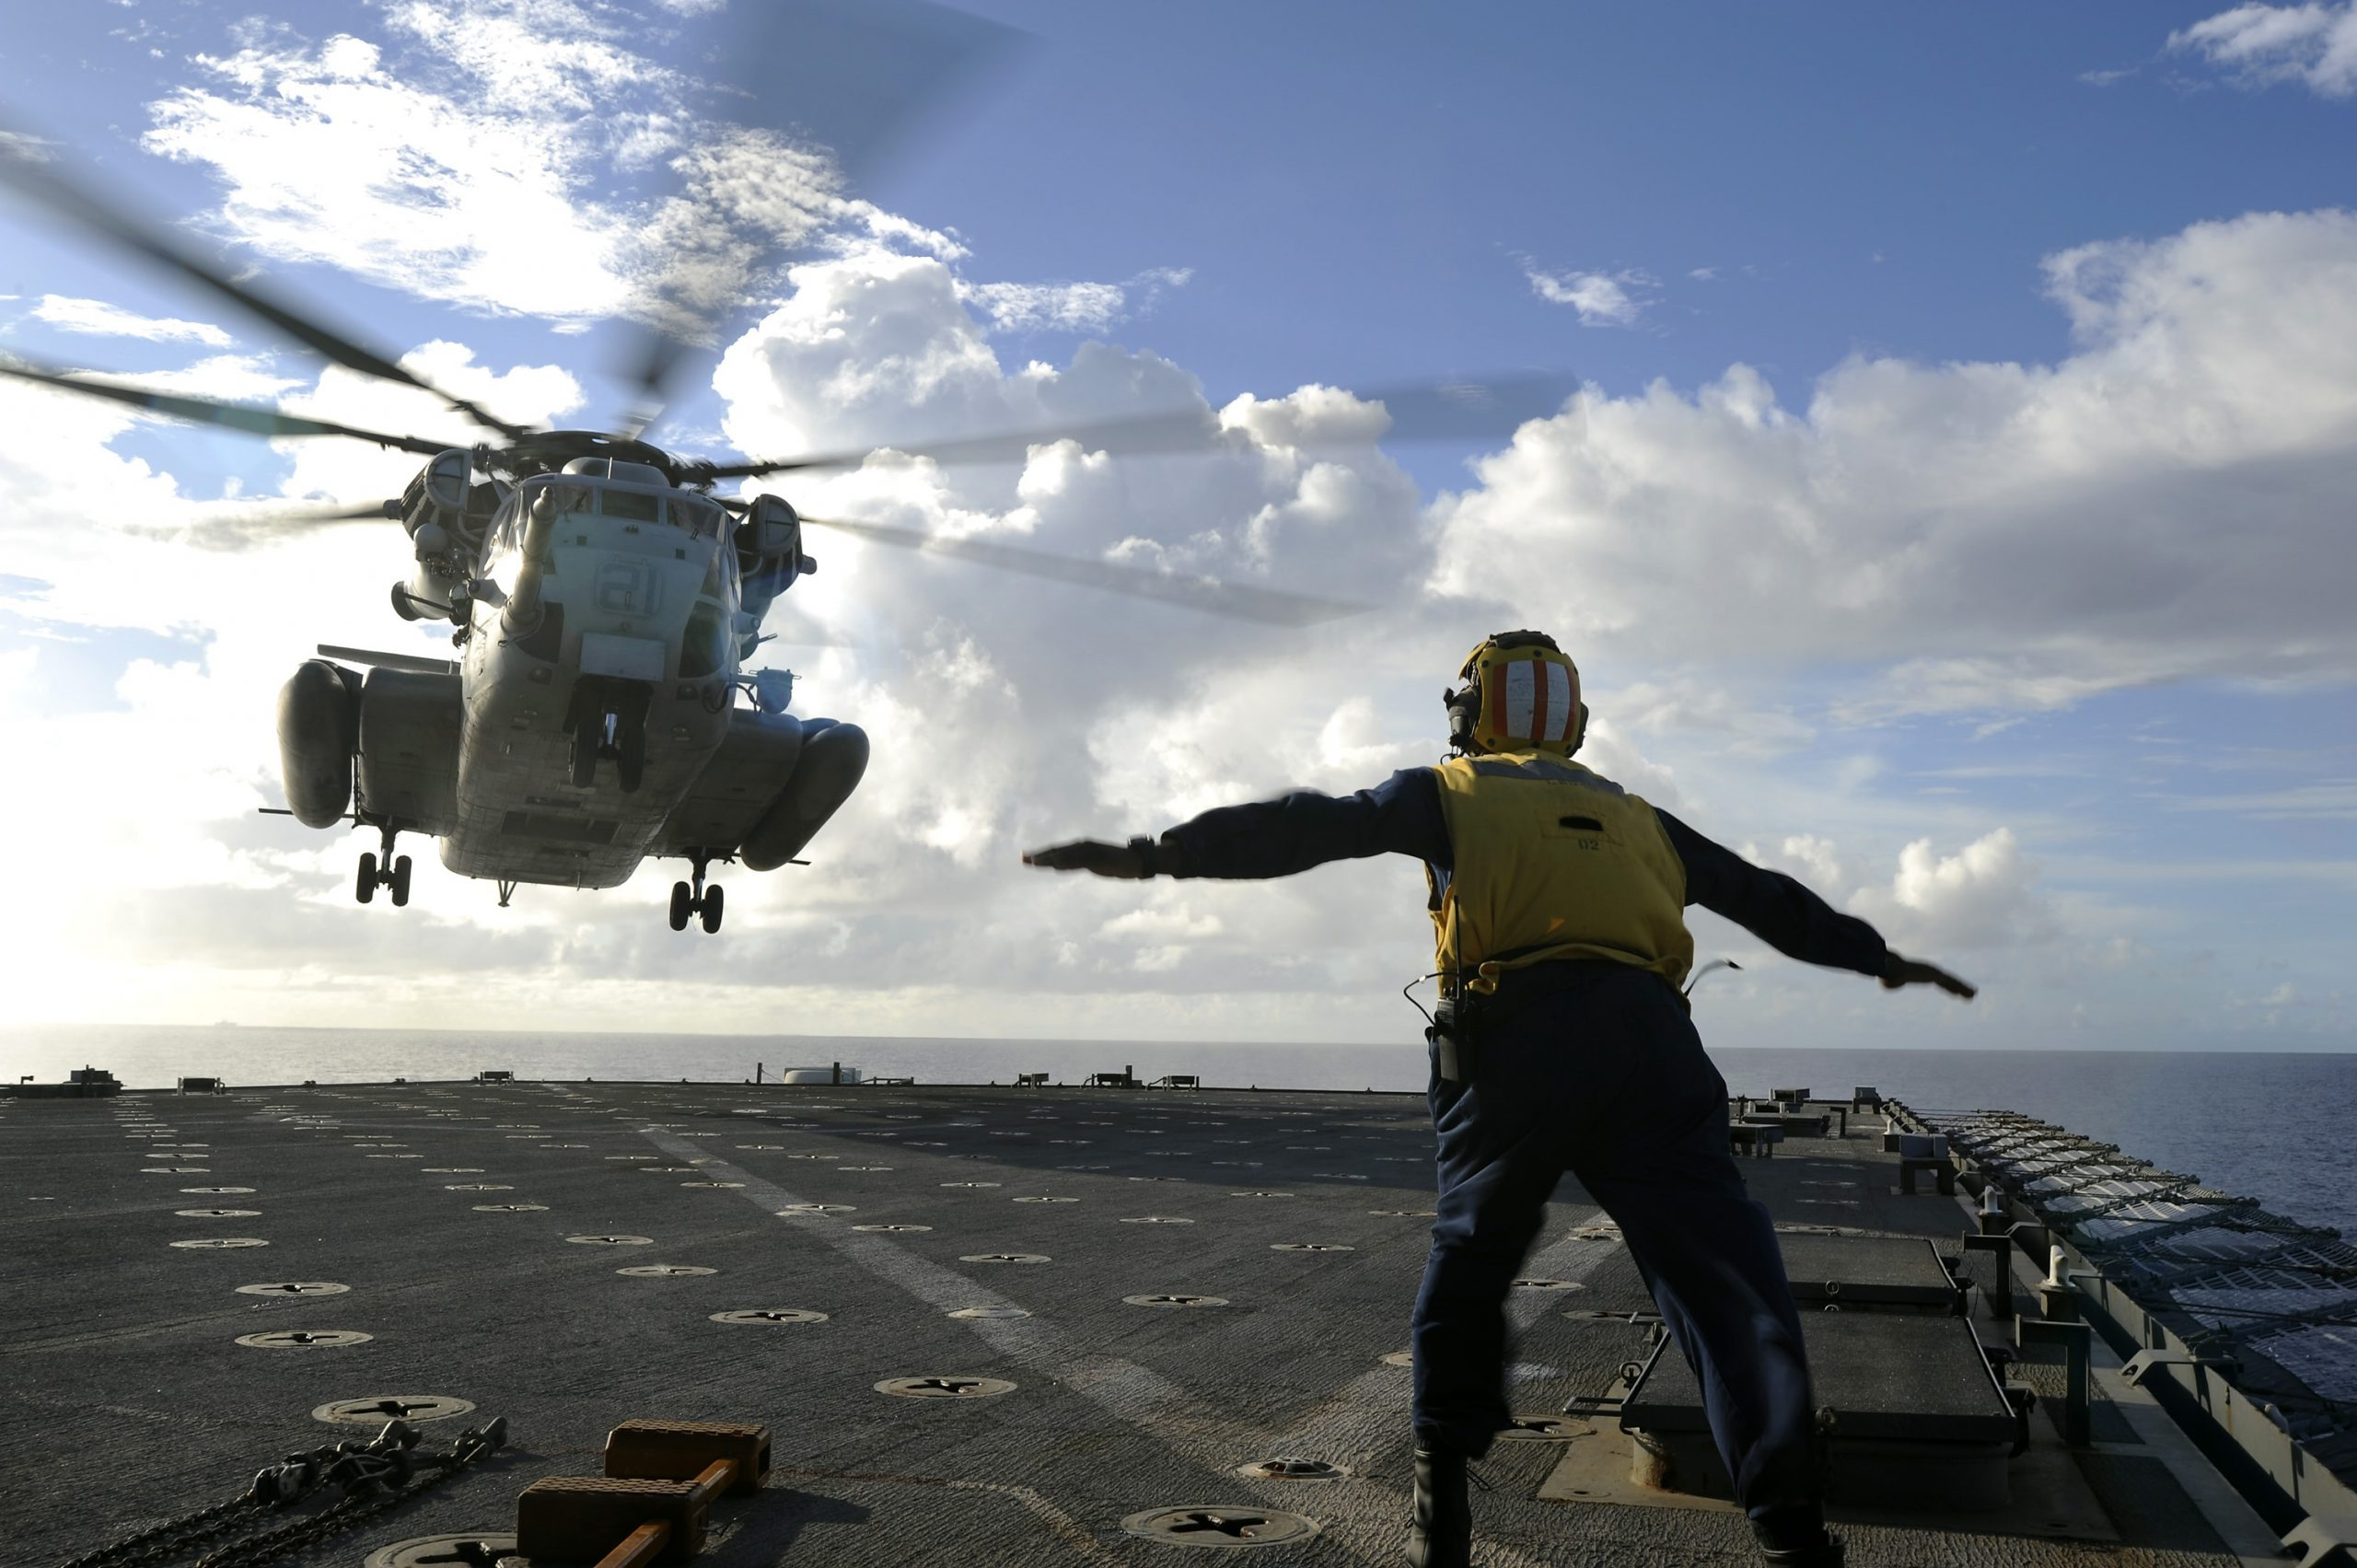 This is a picture of a military helicopter landing on an aircraft carrier for an article called Military communication Competitor Research case study by Octopus is a Competitive Intelligence Competitor Analysis focused on creating certainty